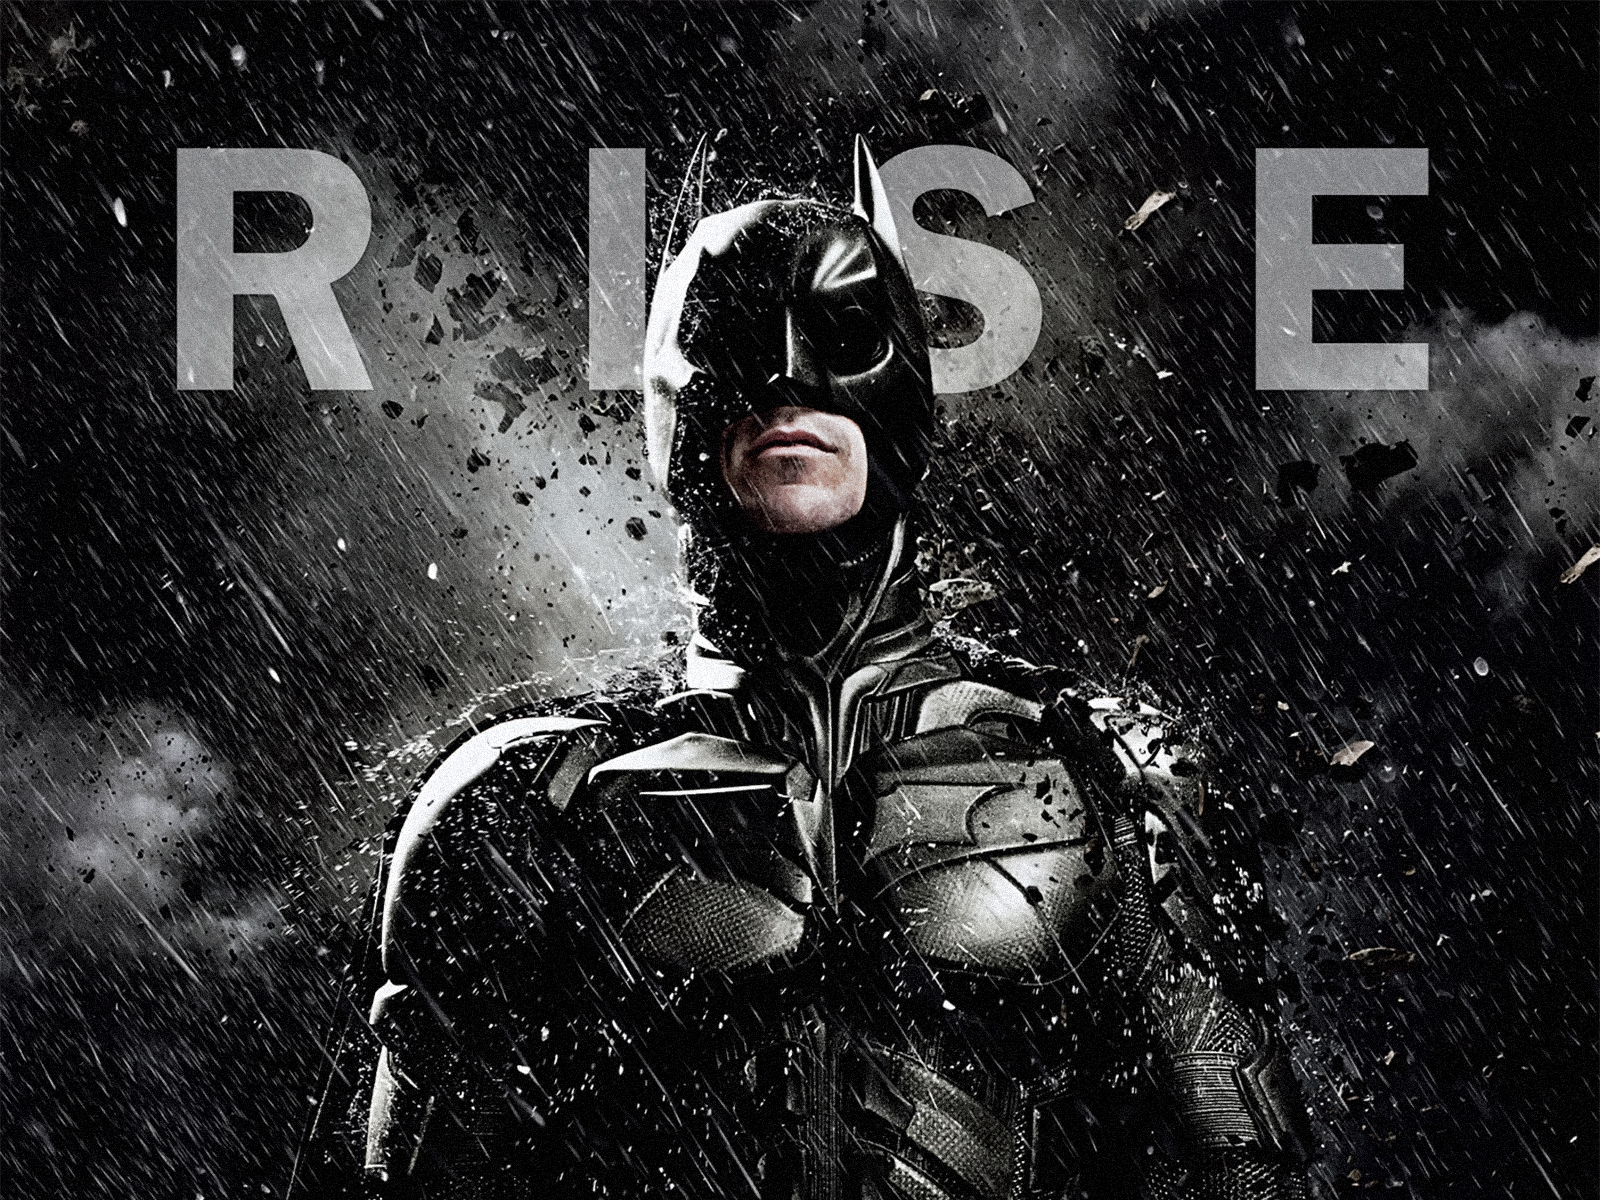 th dark knight rises